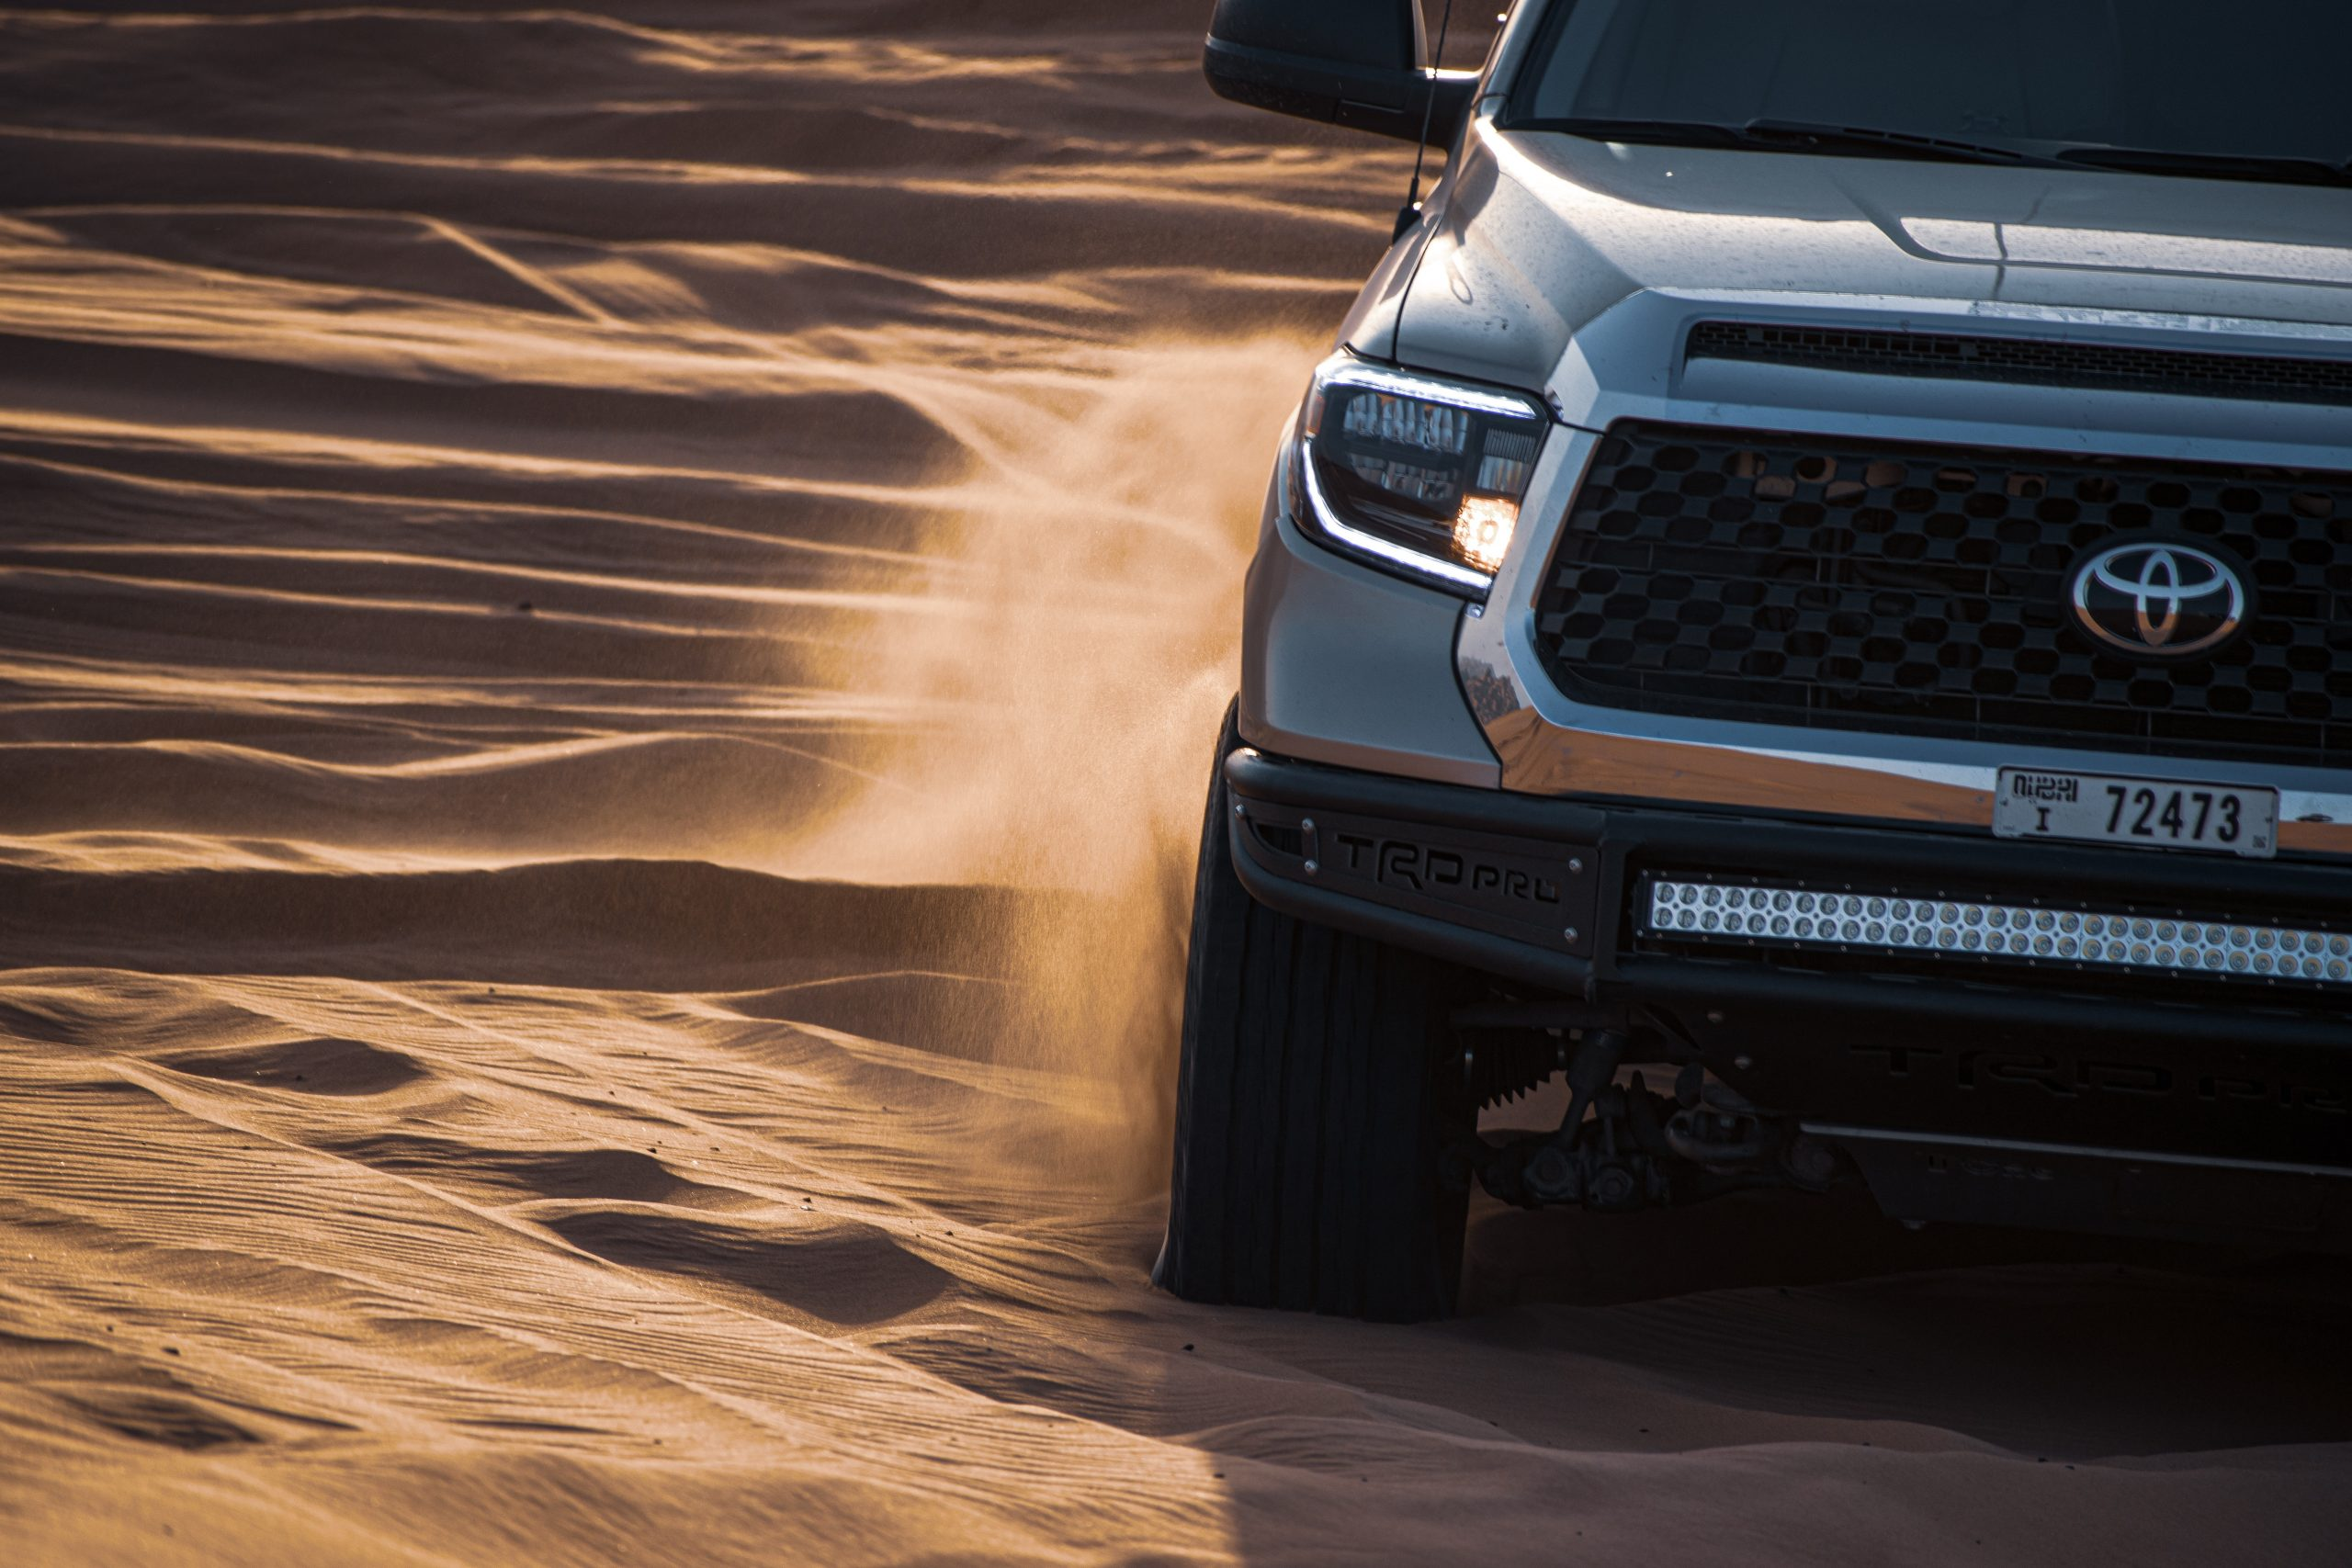 Toyota Hilux power upgrades - silver Toyota on sand